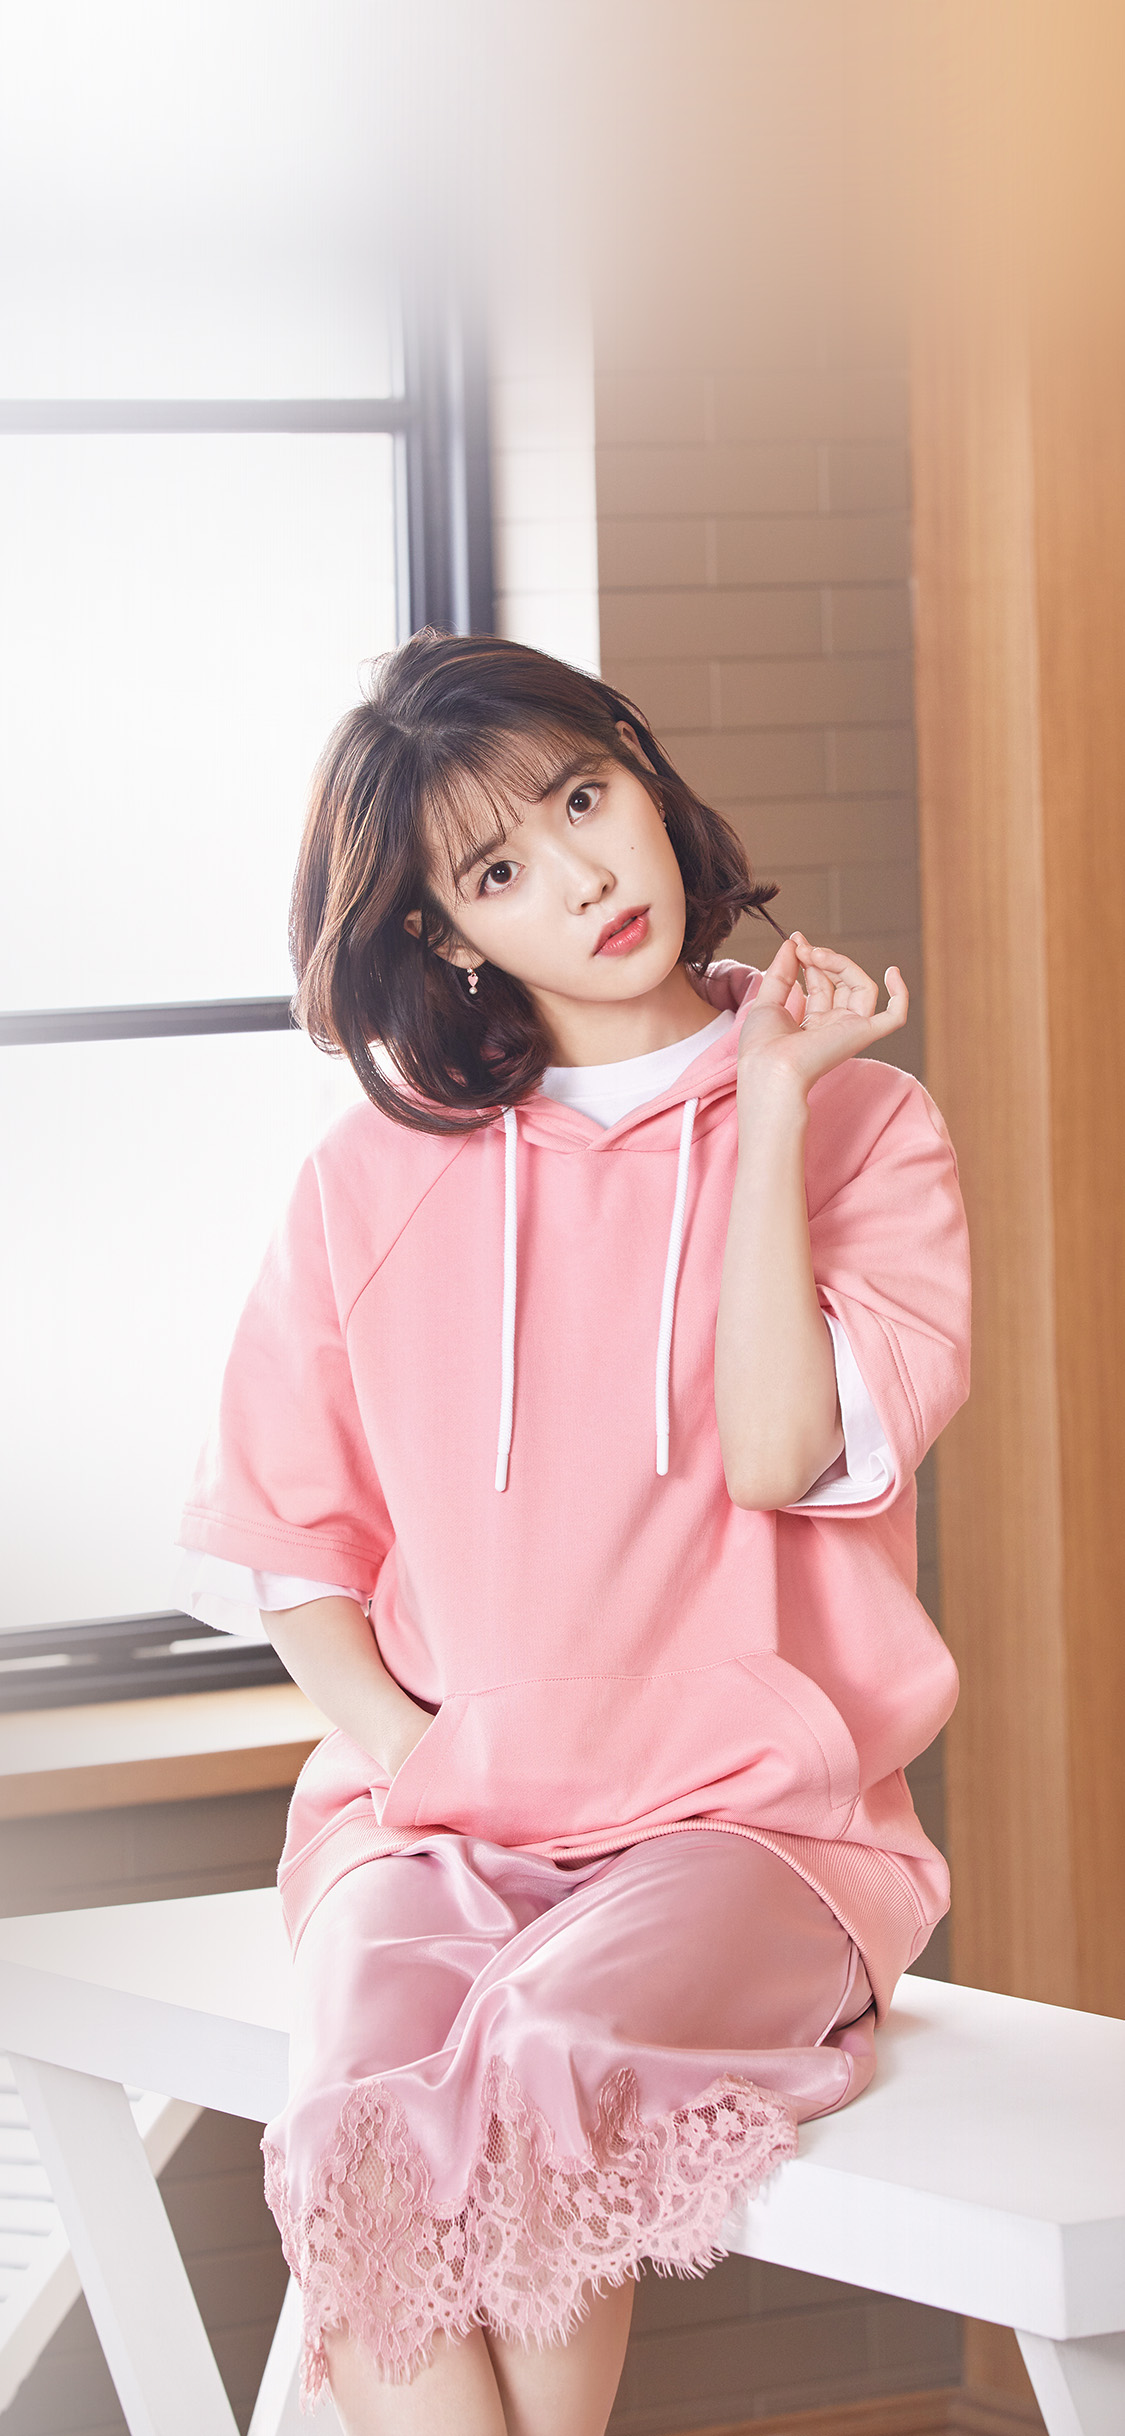 iPhonexpapers.com-Apple-iPhone-wallpaper-hq31-iu-girl-pink-kpop-singer-asian-celebrity-music